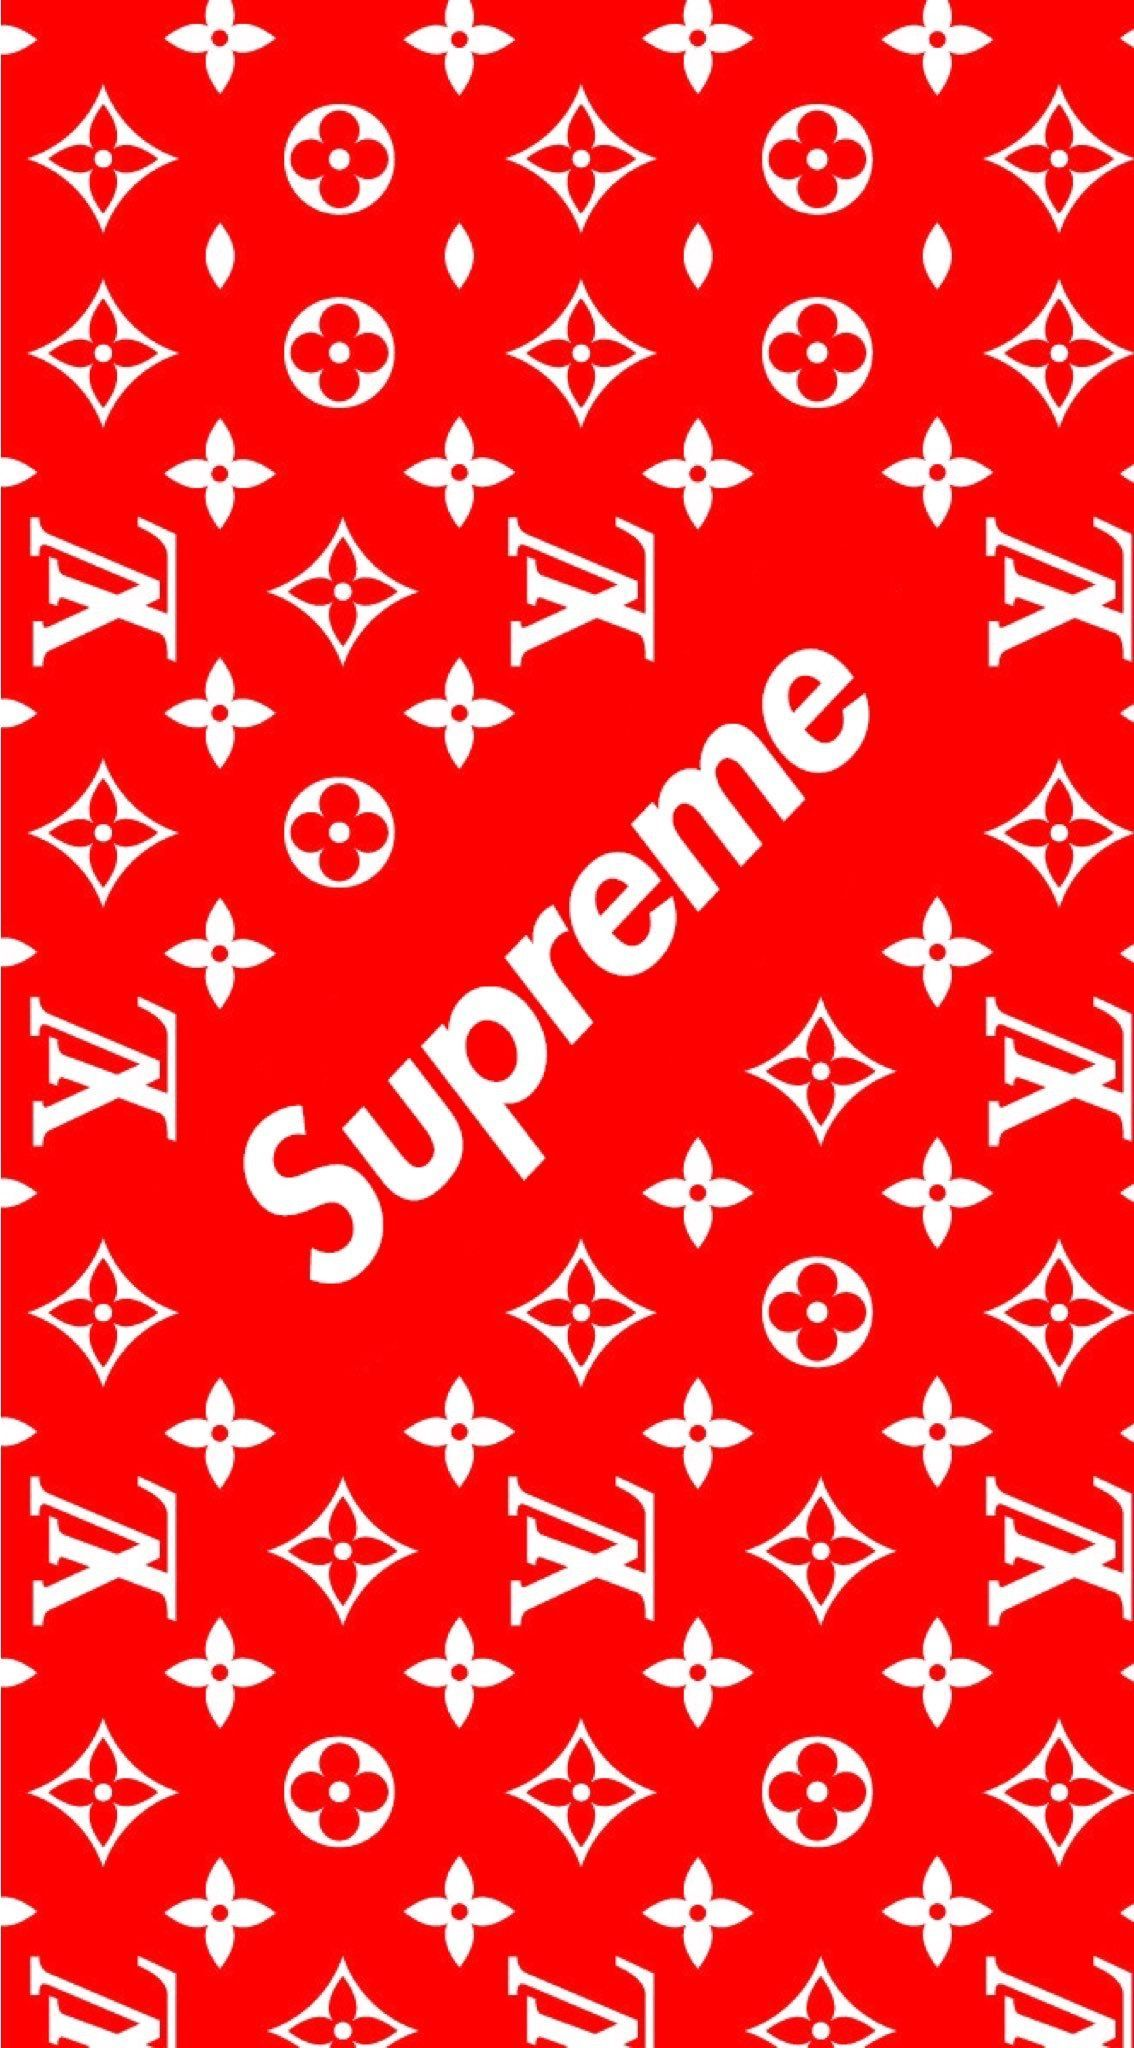 1920x1080 70+ Supreme Wallpapers ...